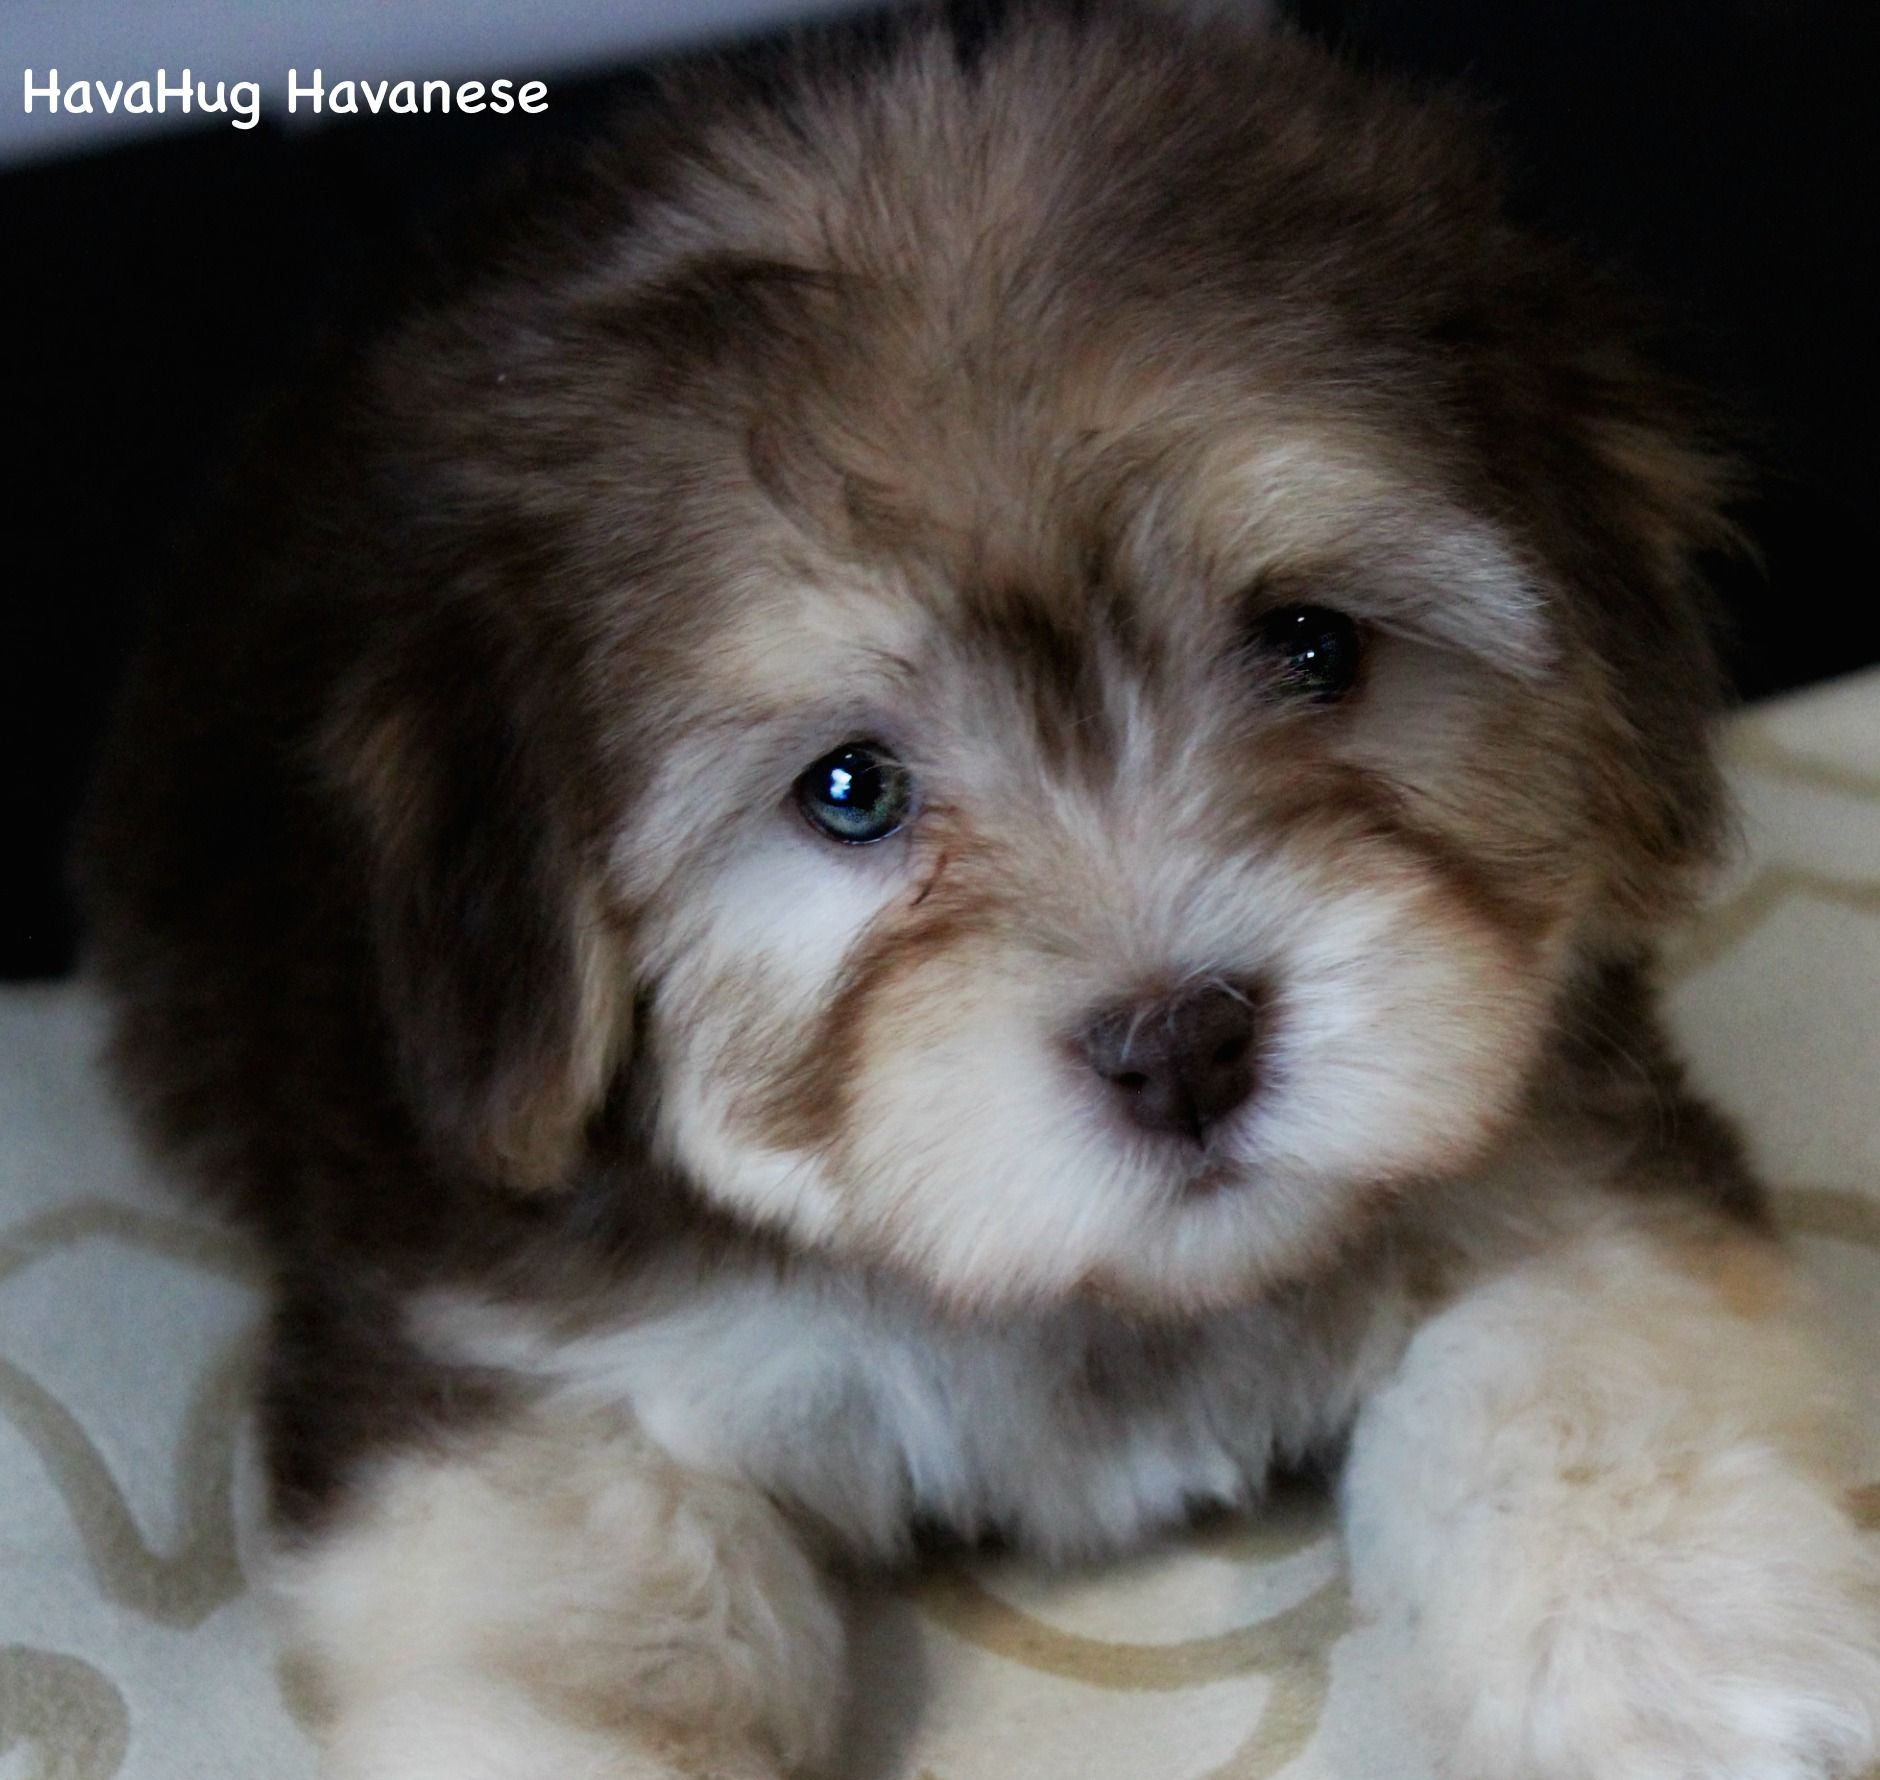 The World's Most Beautiful Havanese Puppies